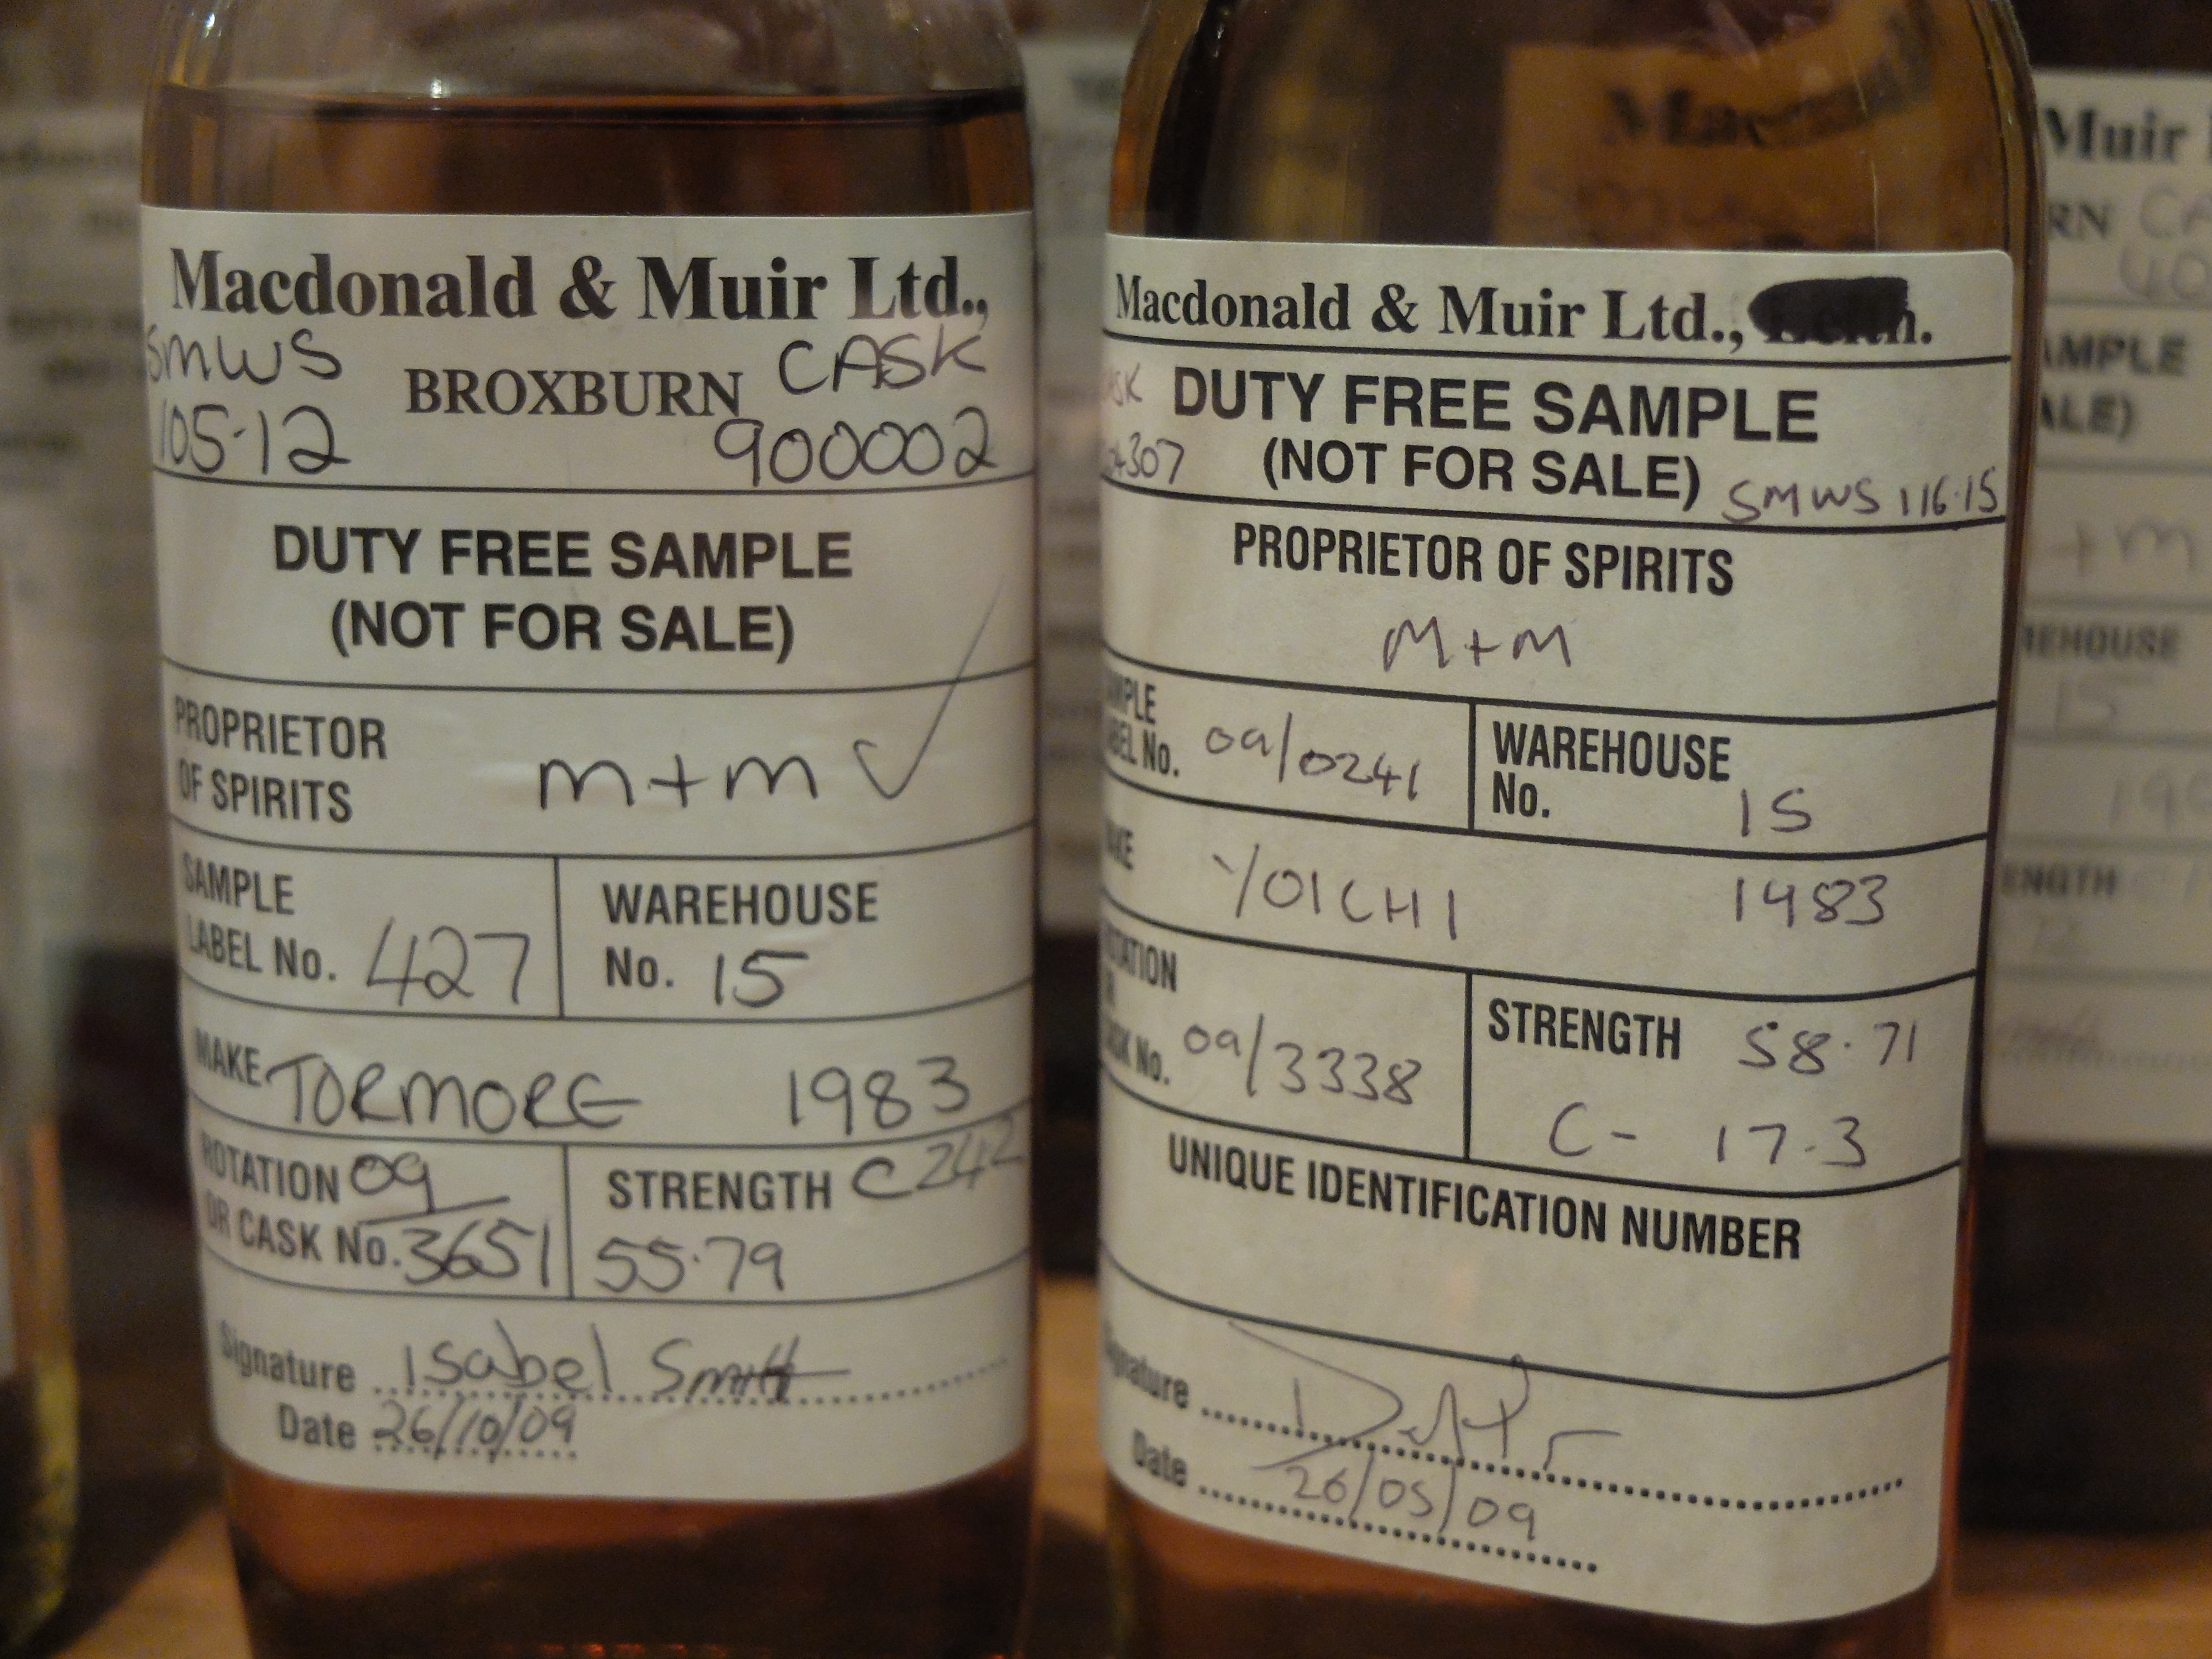 SMWS Tormore 105.12 and Yoichi 116.15